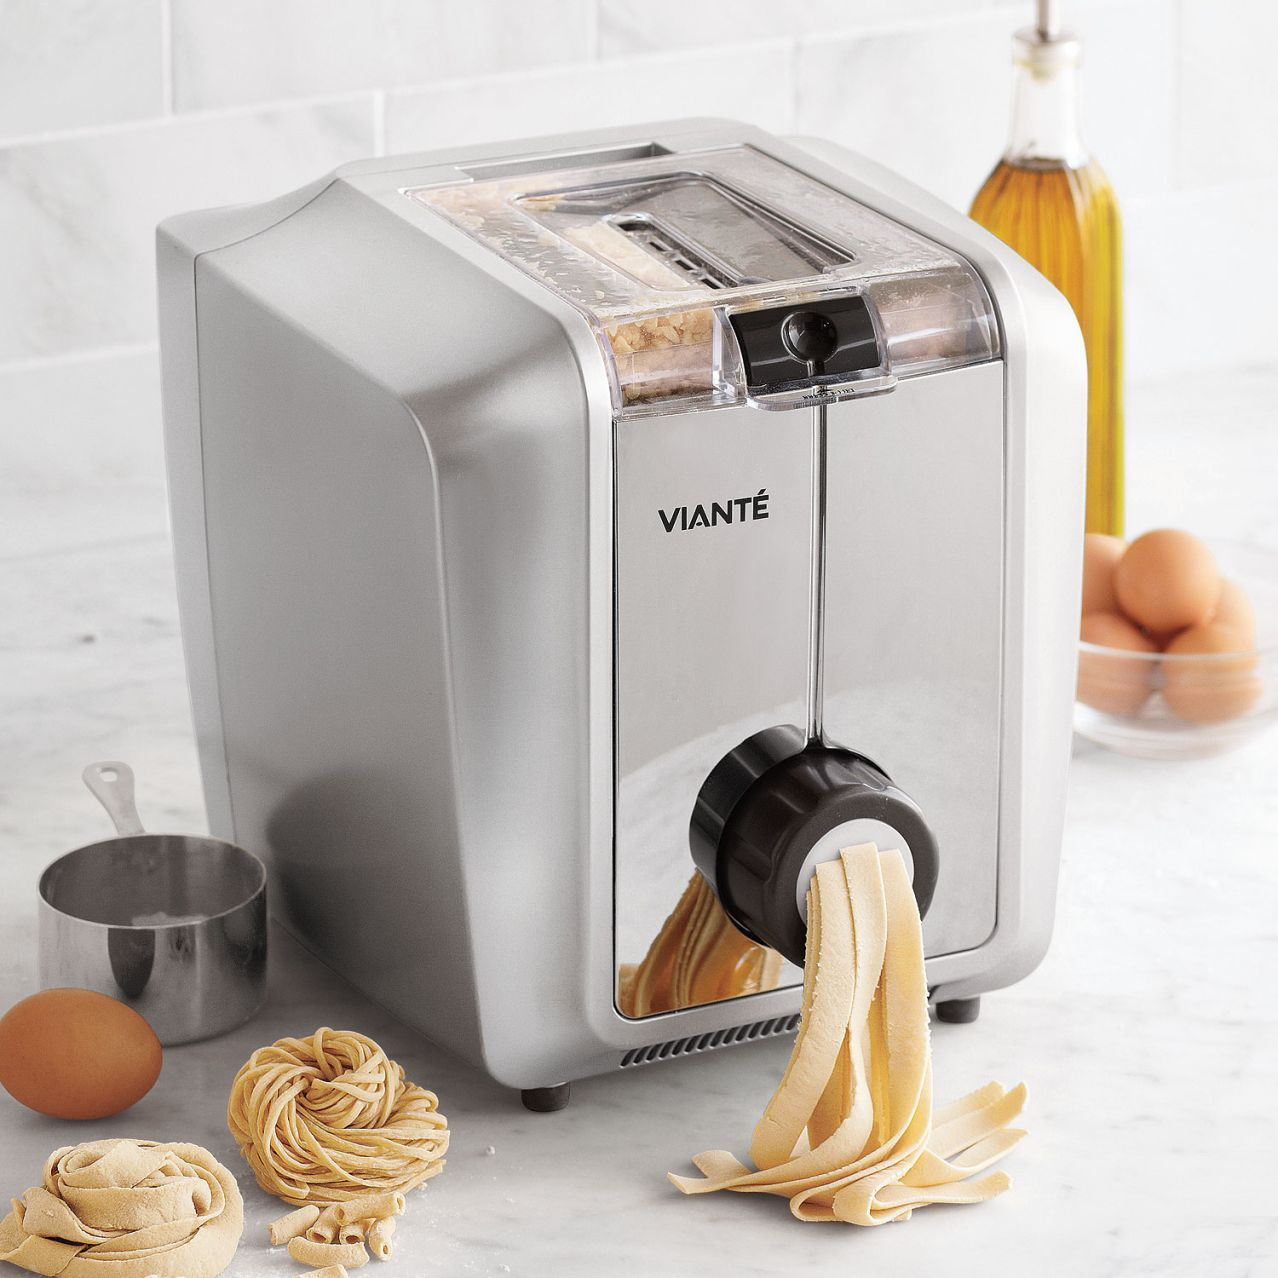 Cool Kitchen Stuff: Vianté® Electric Pasta Maker